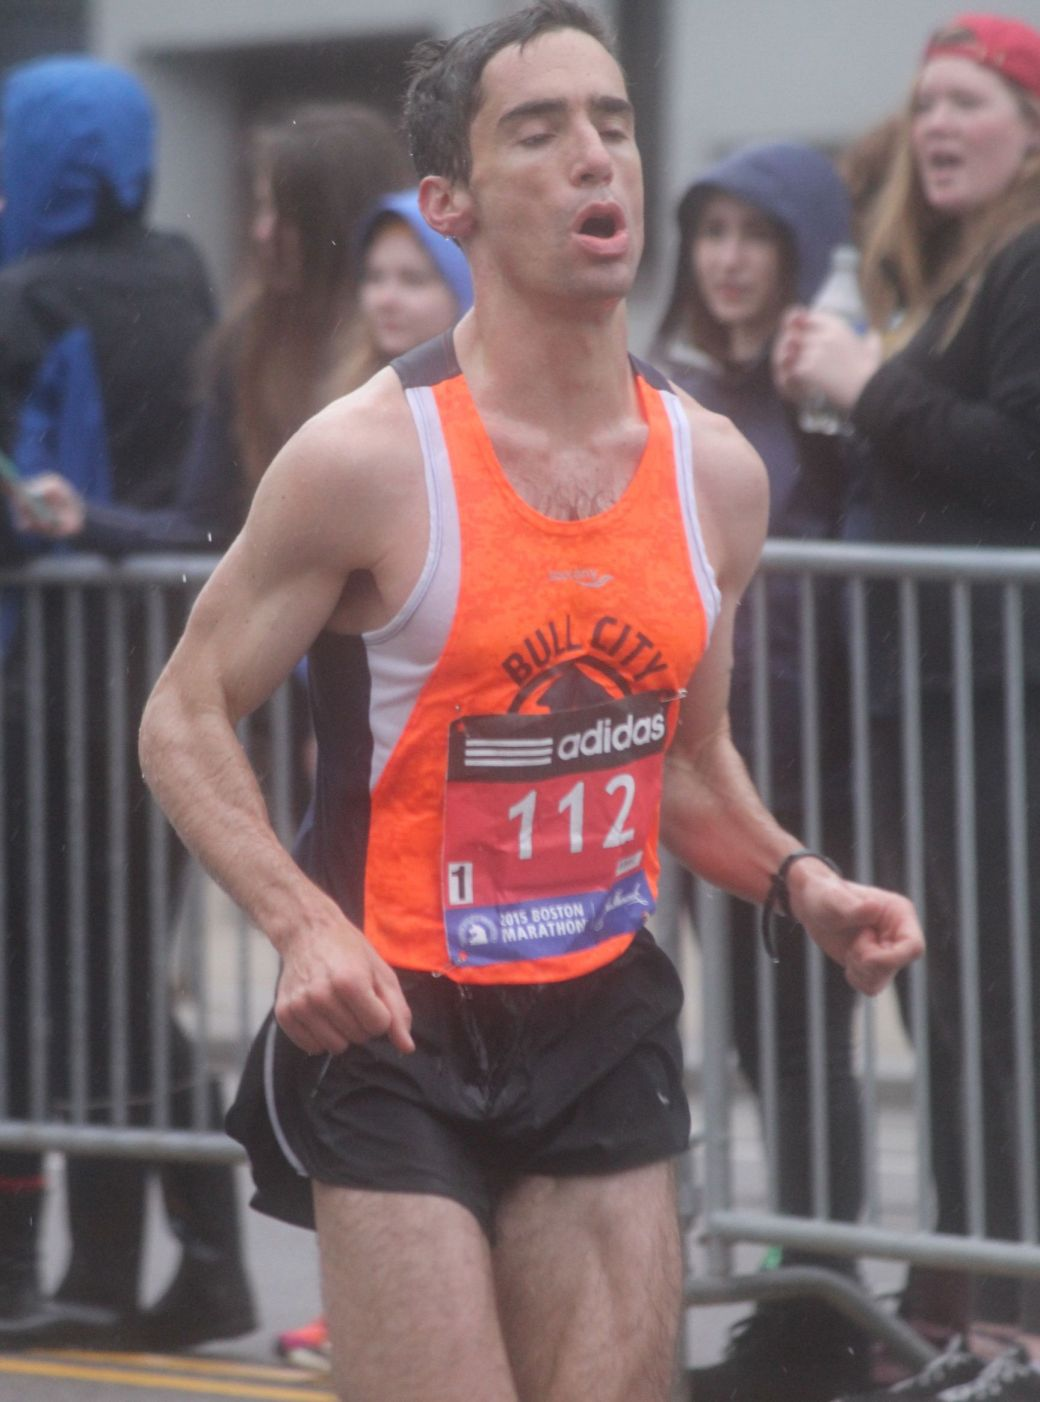 boston marathon april 20 2015 racer number 112 man 2